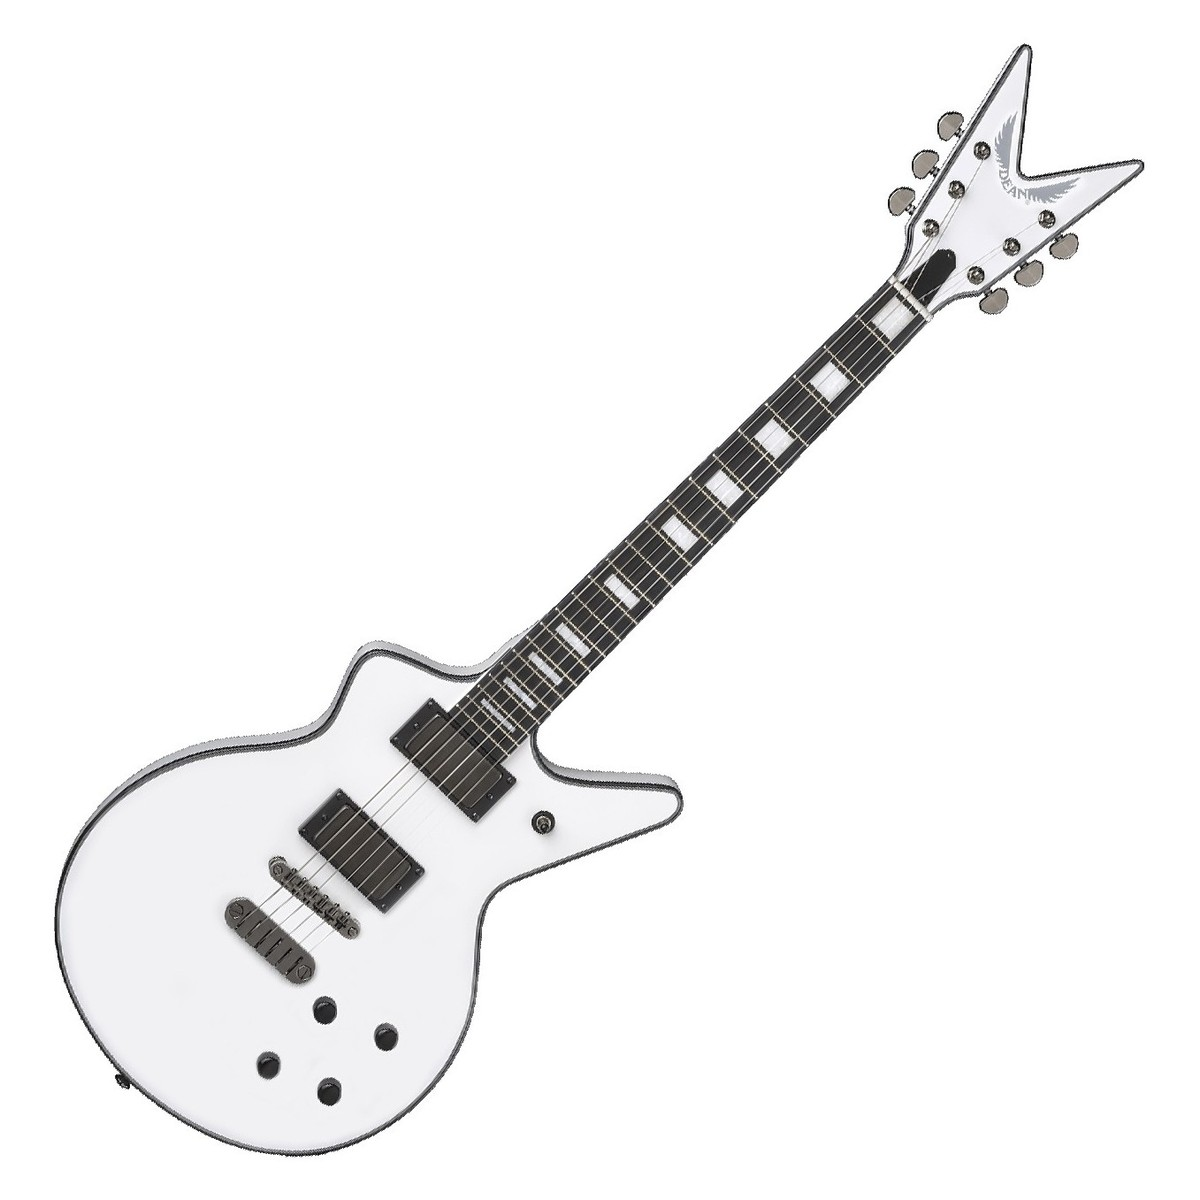 dean cadillac 1980 classic white at gear4music Eub Bass loading zoom